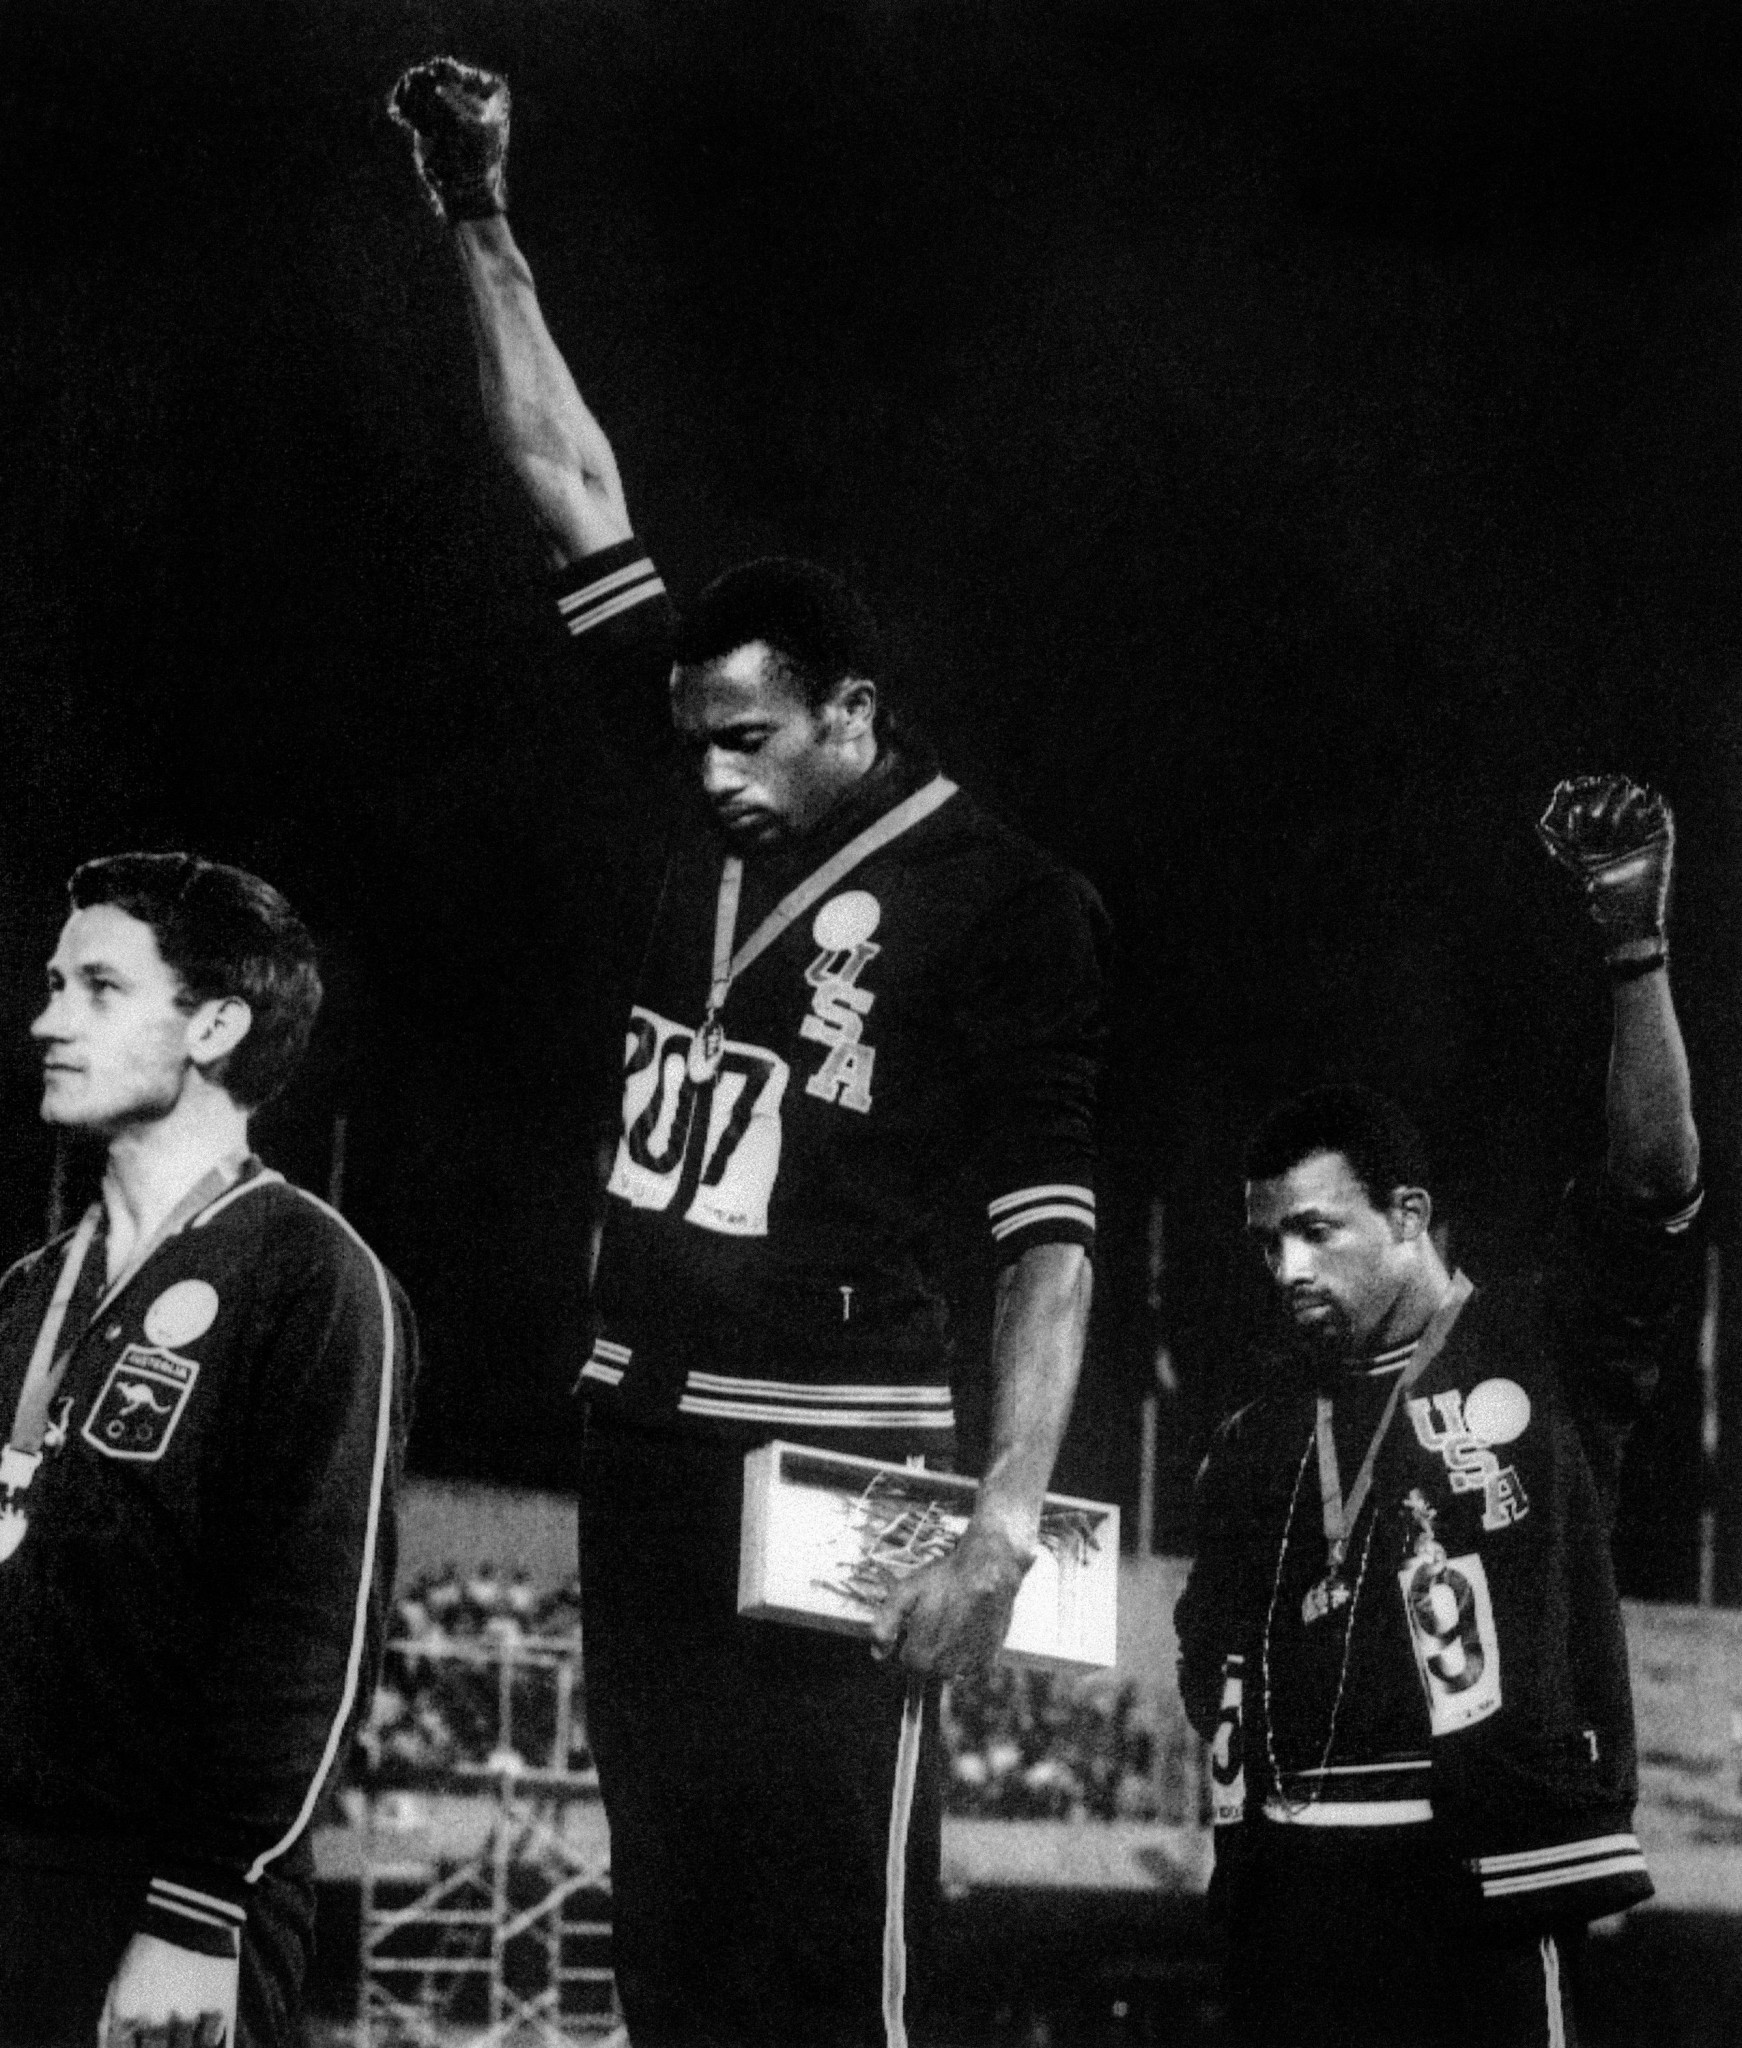 Tommie Smith and John Carlos will be inducted into the USOPC Hall of Fame more than 50 years after their black power protest at Mexico City 1968©Getty Images